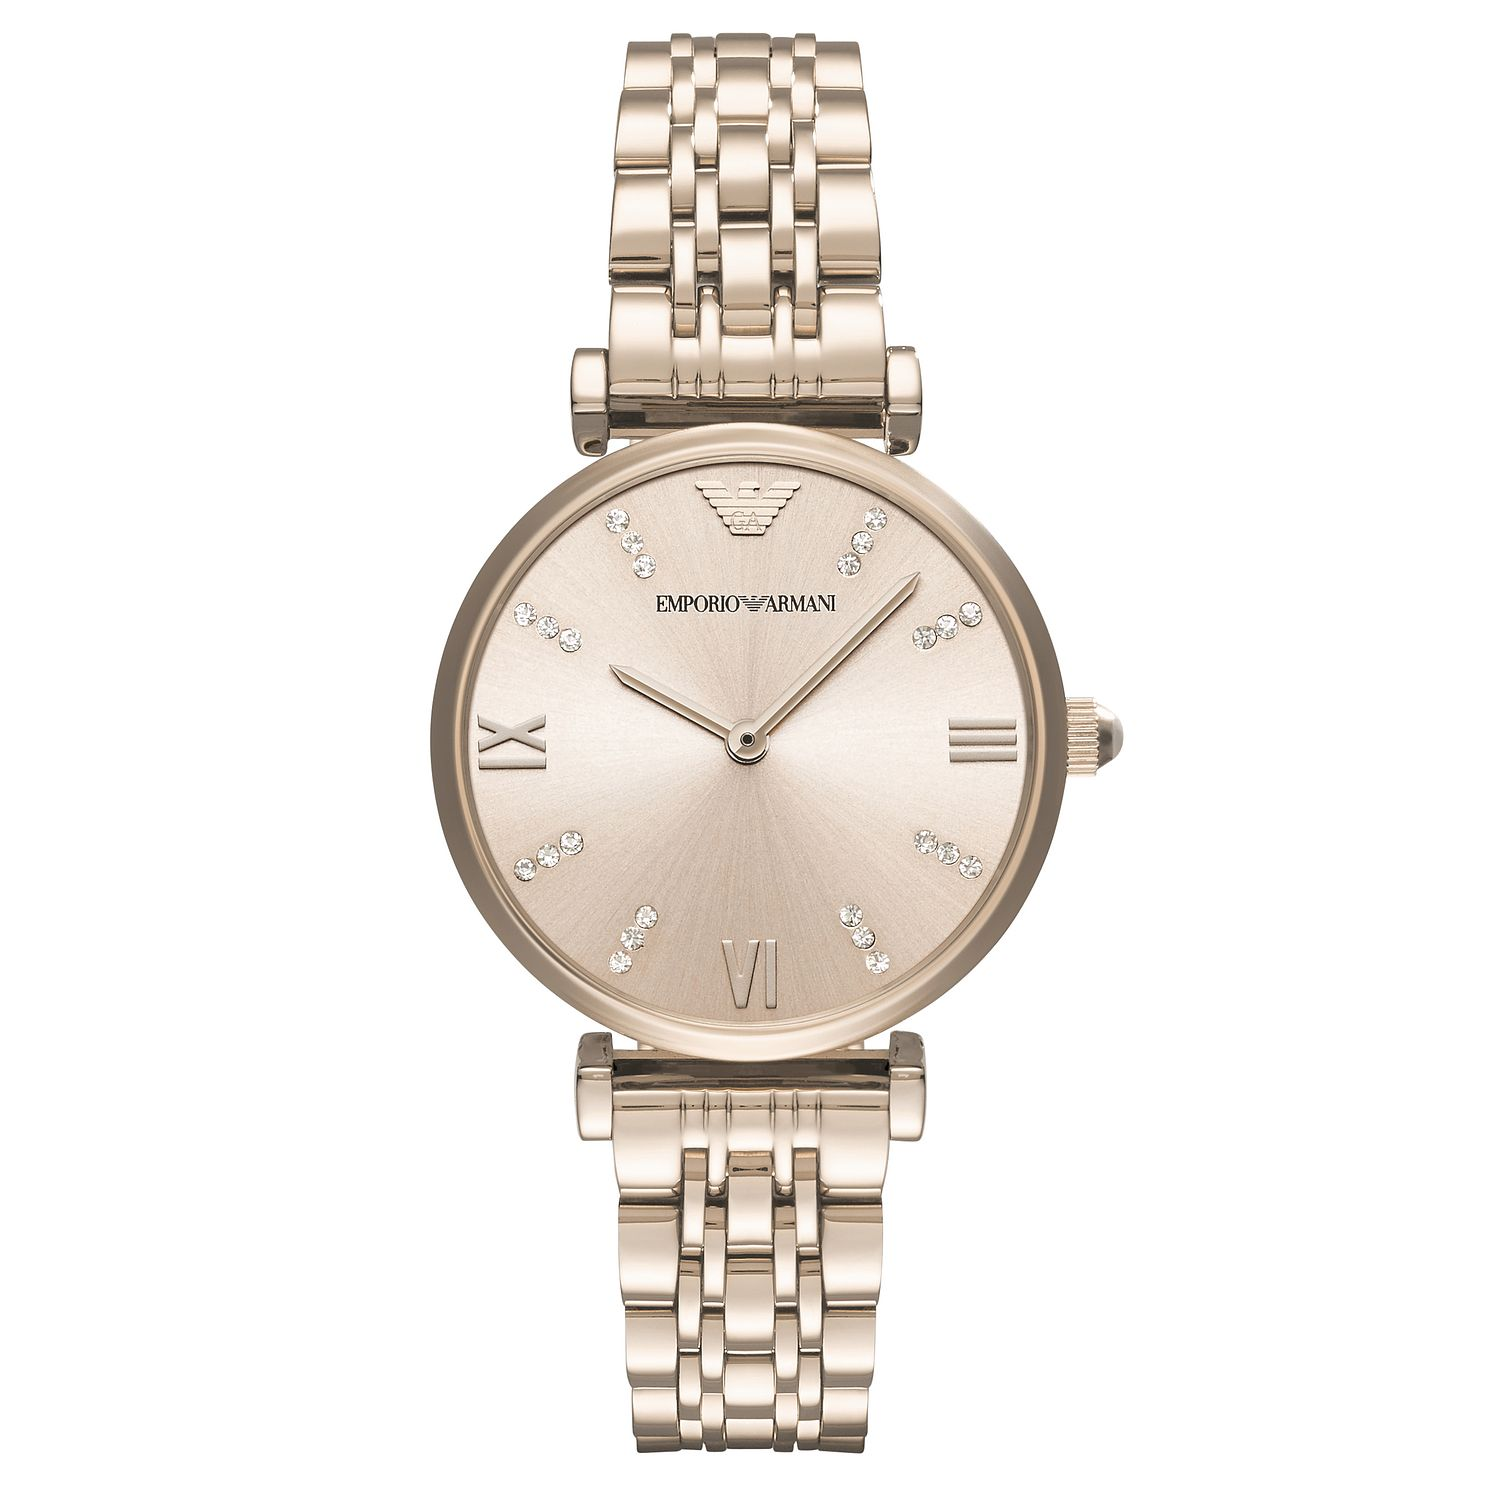 Emporio Armani Ladies' Rose Gold Tone Bracelet Watch - Product number 6988253